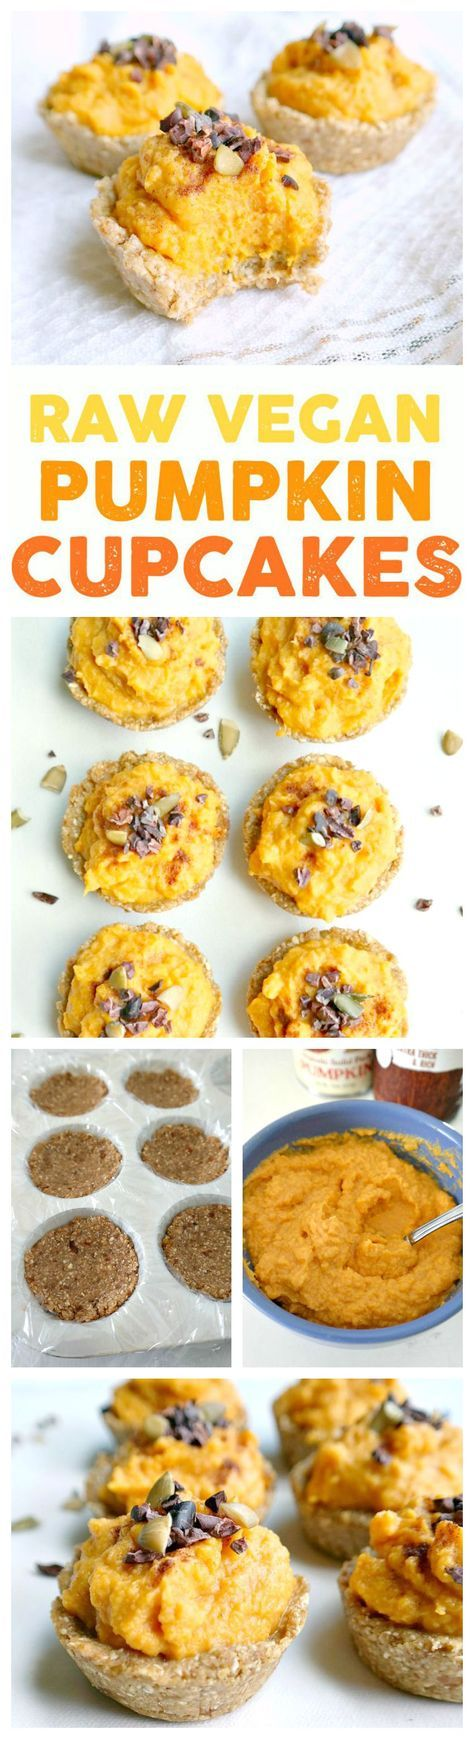 Raw Vegan Pumpkin Cupcakes! Gluten-Free, Festive and perfect for Fall. These cute little raw cupcakes are super simple to make using whole food ingredients like medjool dates, rolled oats, pumpkin and coconut cream. From The Glowing Fridge